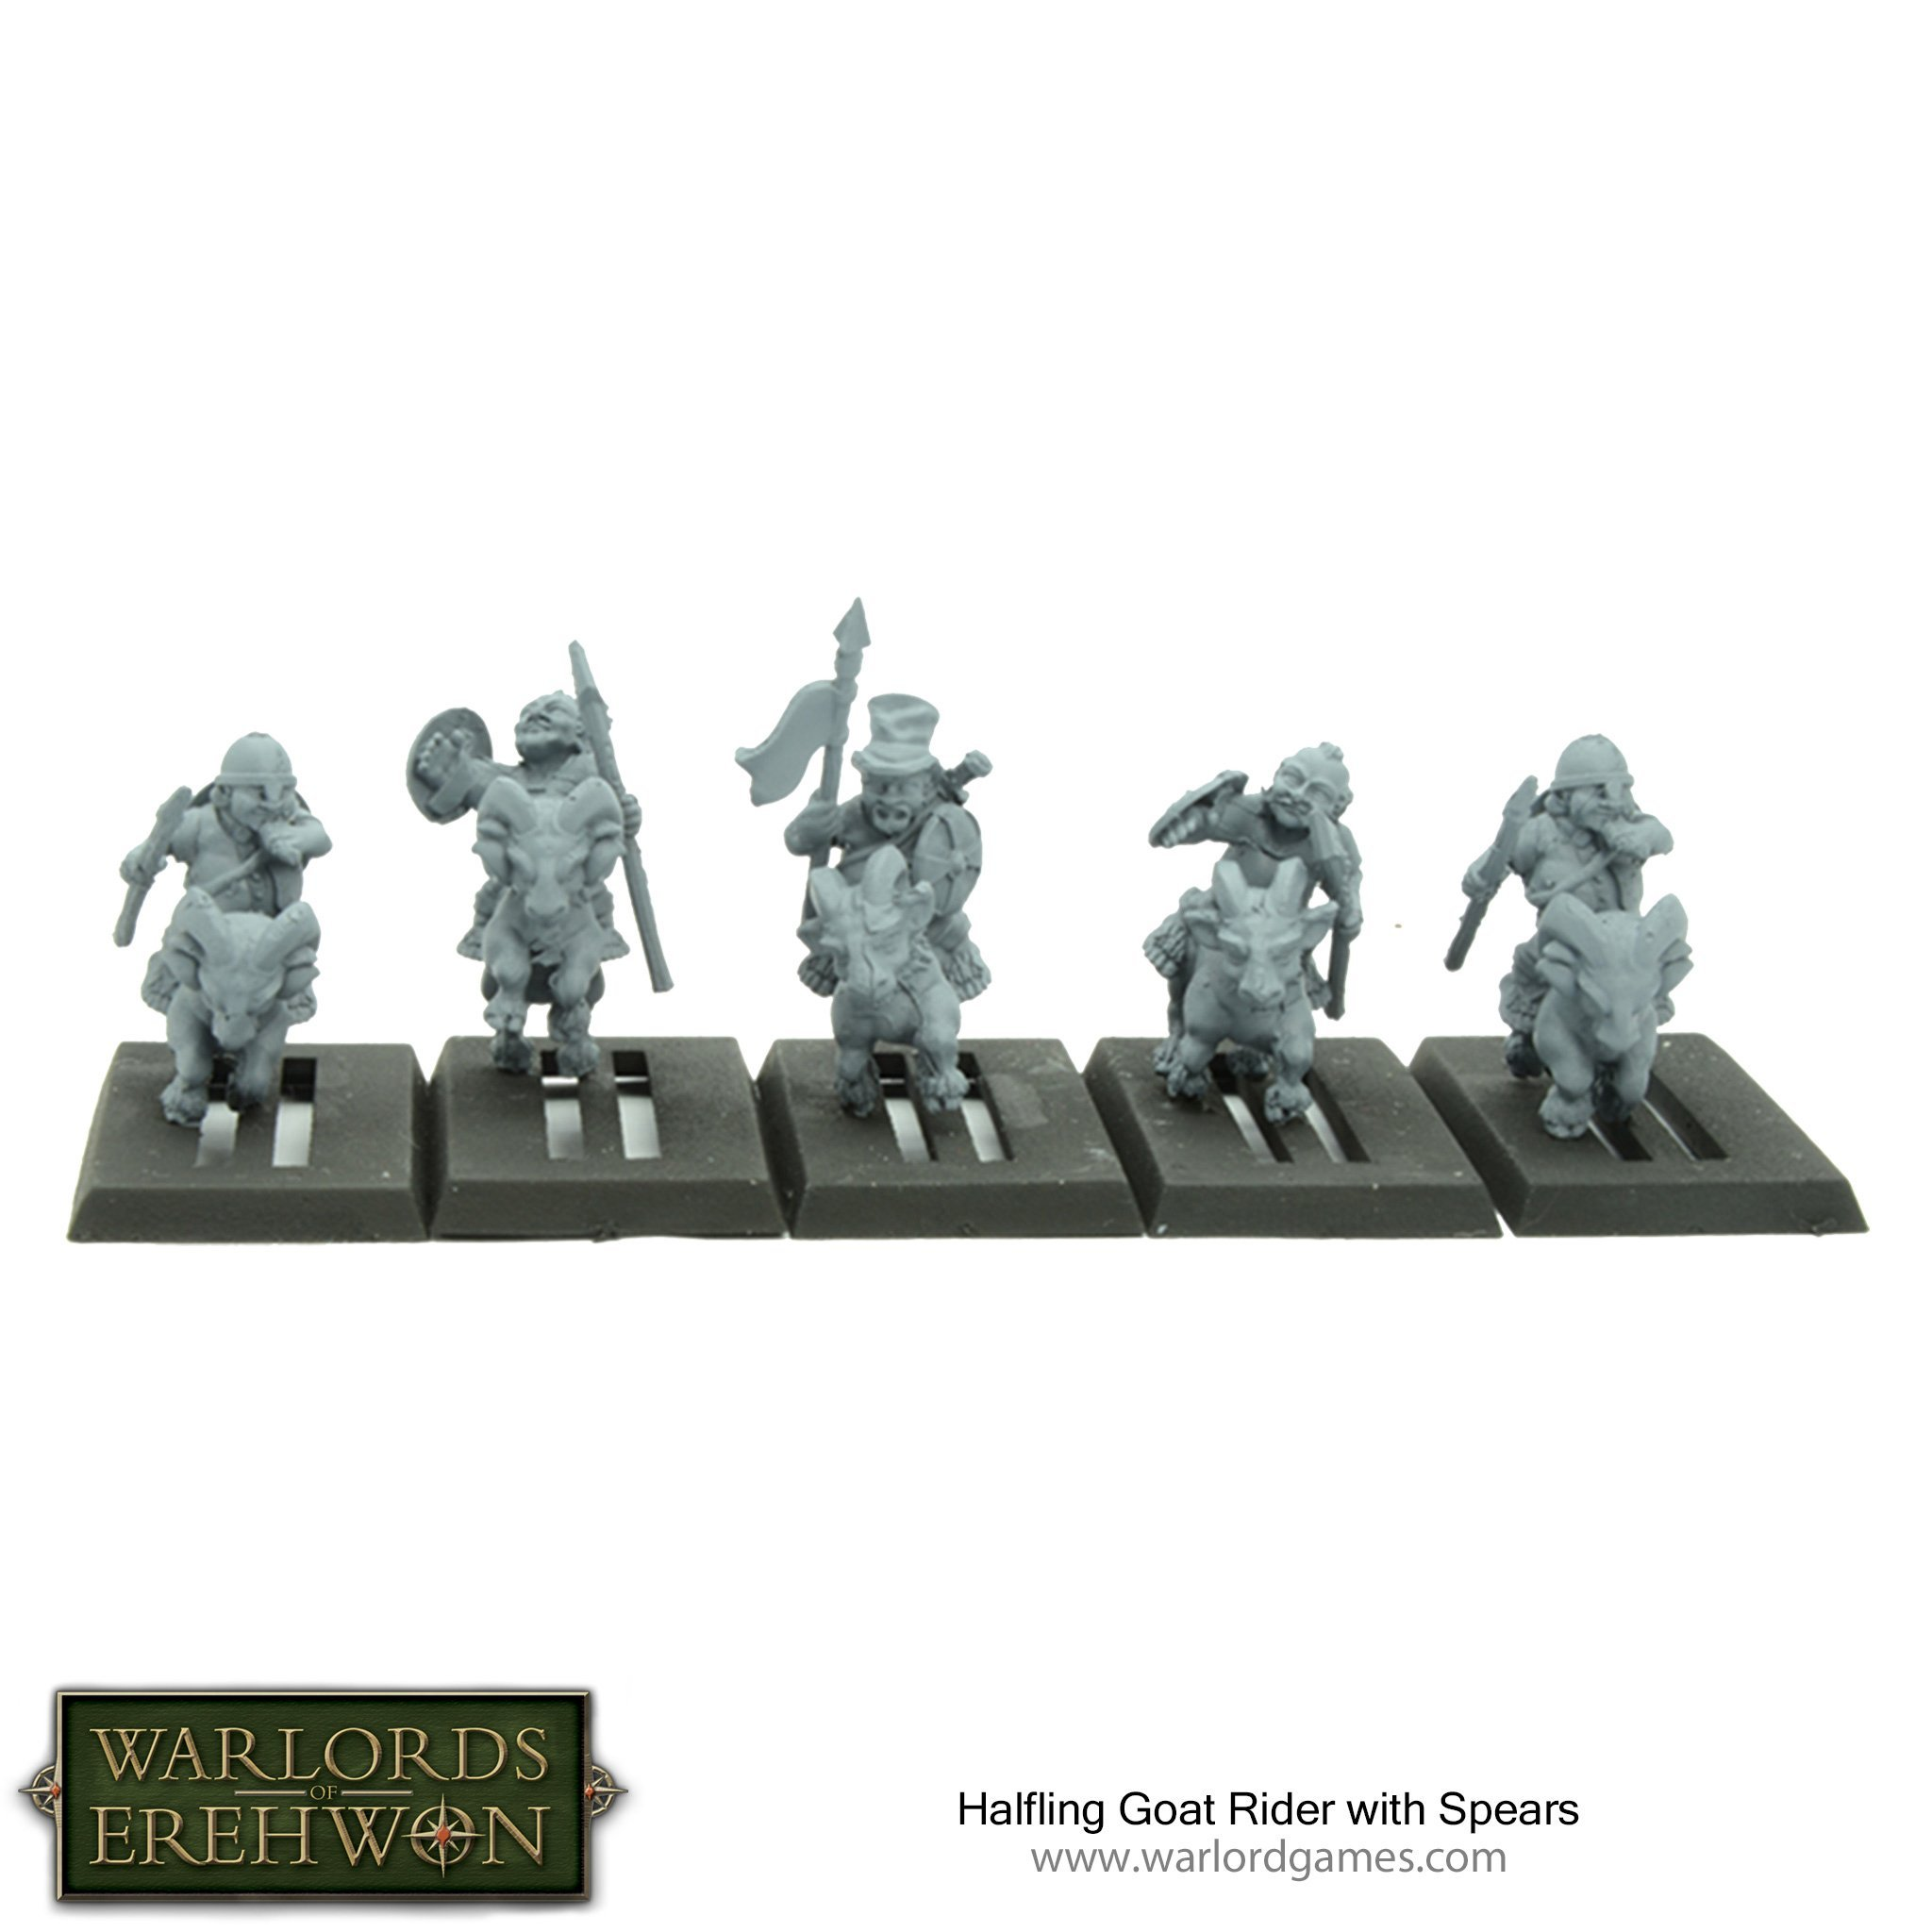 Warlords of Erehwon: Halfling Goat Riders with Spears